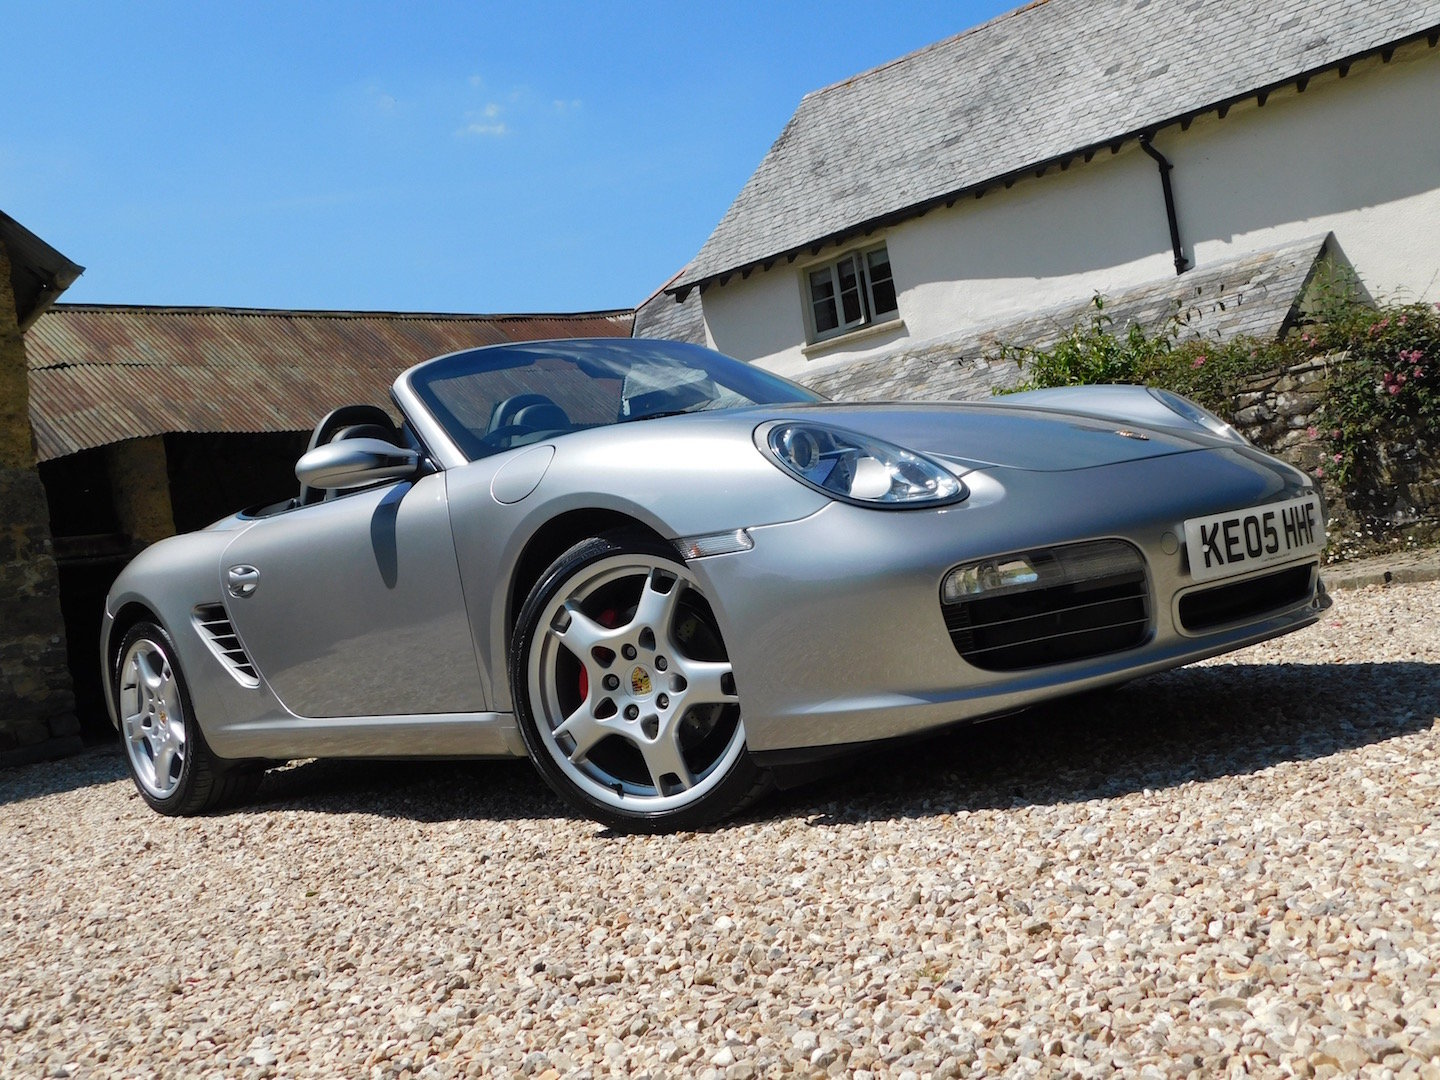 2005 Porsche 987 Boxster 3.2 S - superb order, FSH, high spec For Sale (picture 1 of 6)